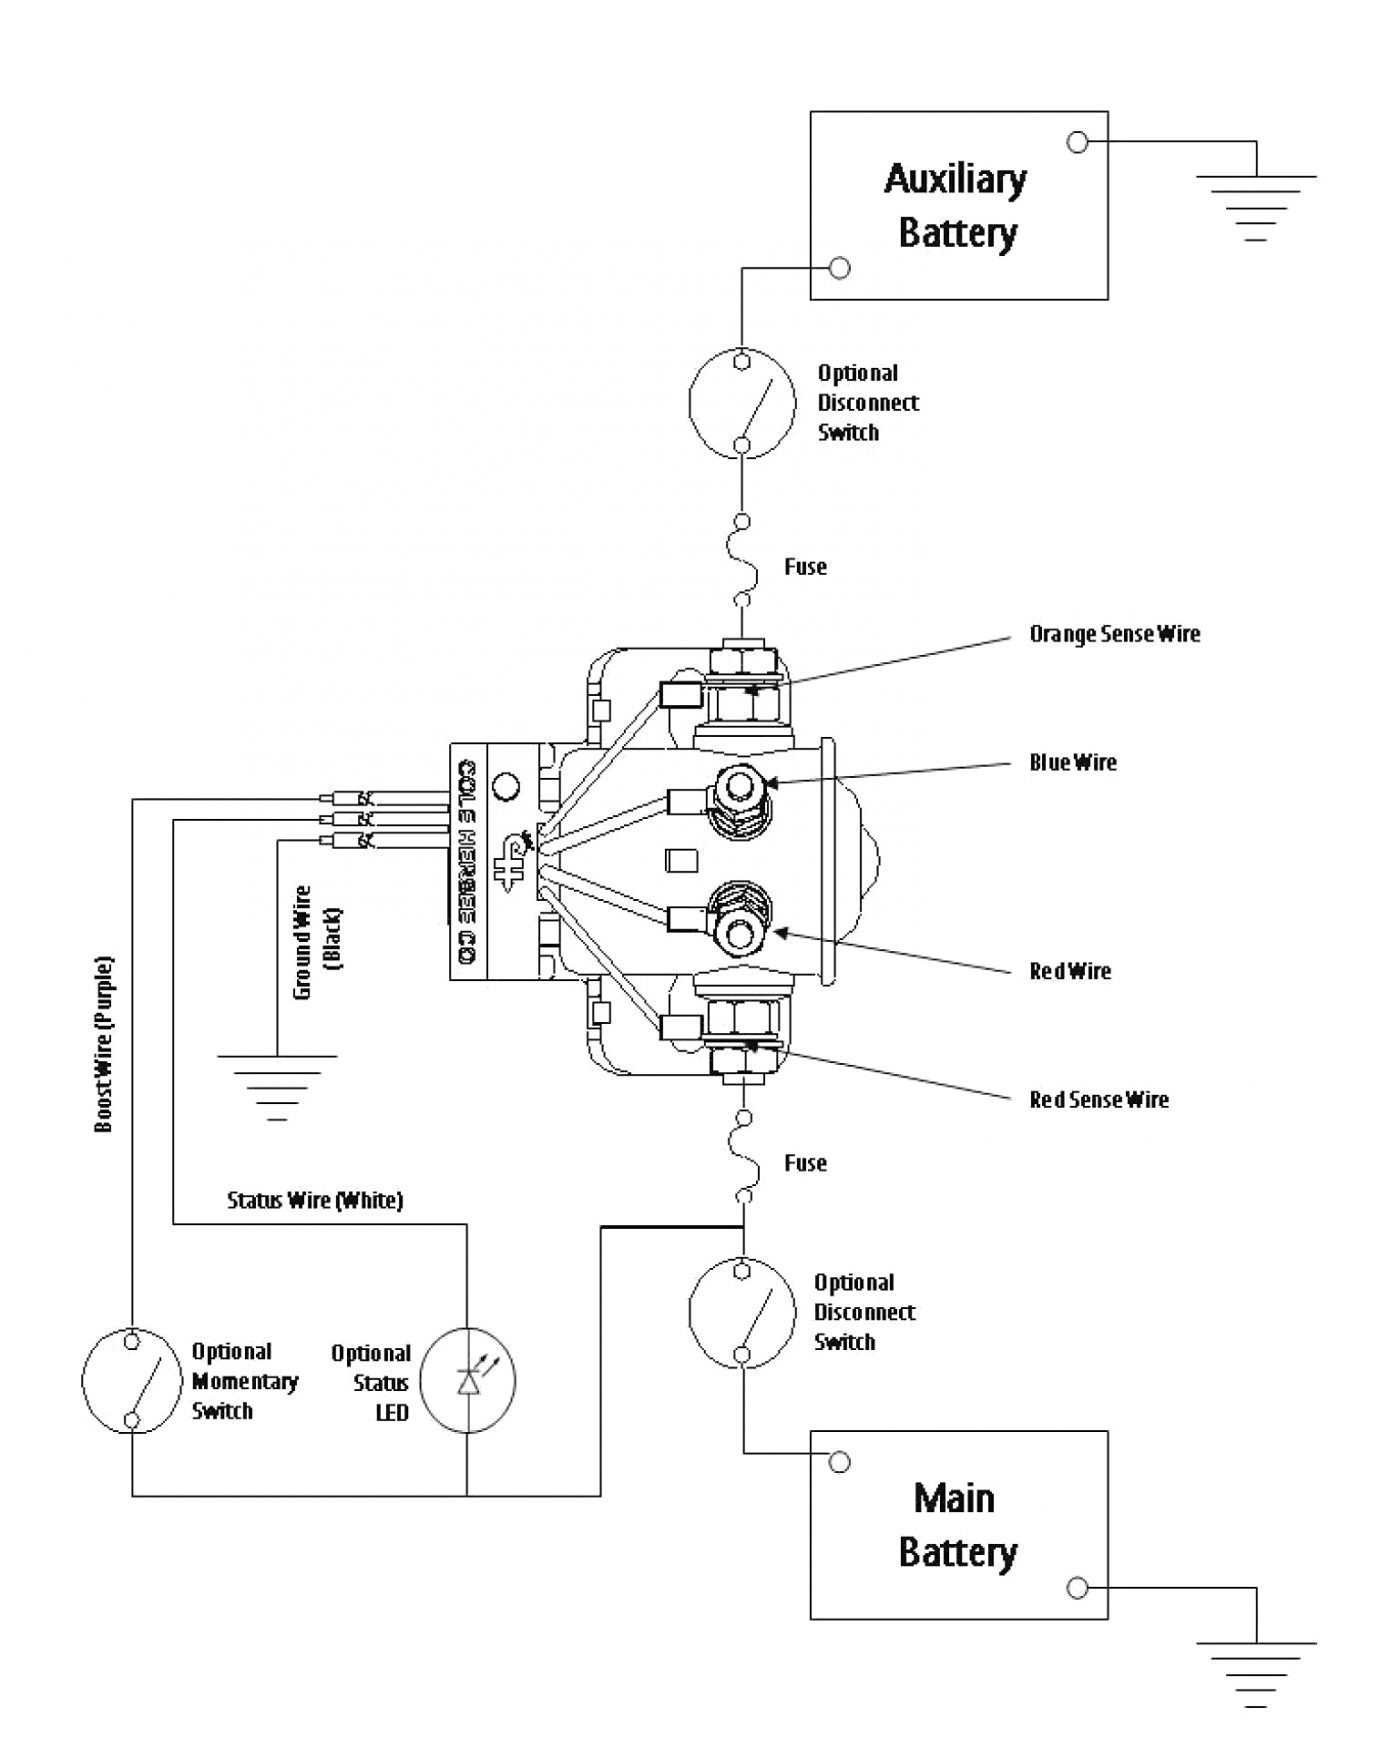 2001 Chevy Silverado Wiring Diagram Bmw X5 Ac Wiring Diagram Another Blog About Wiring Diagram • Of 2001 Chevy Silverado Wiring Diagram